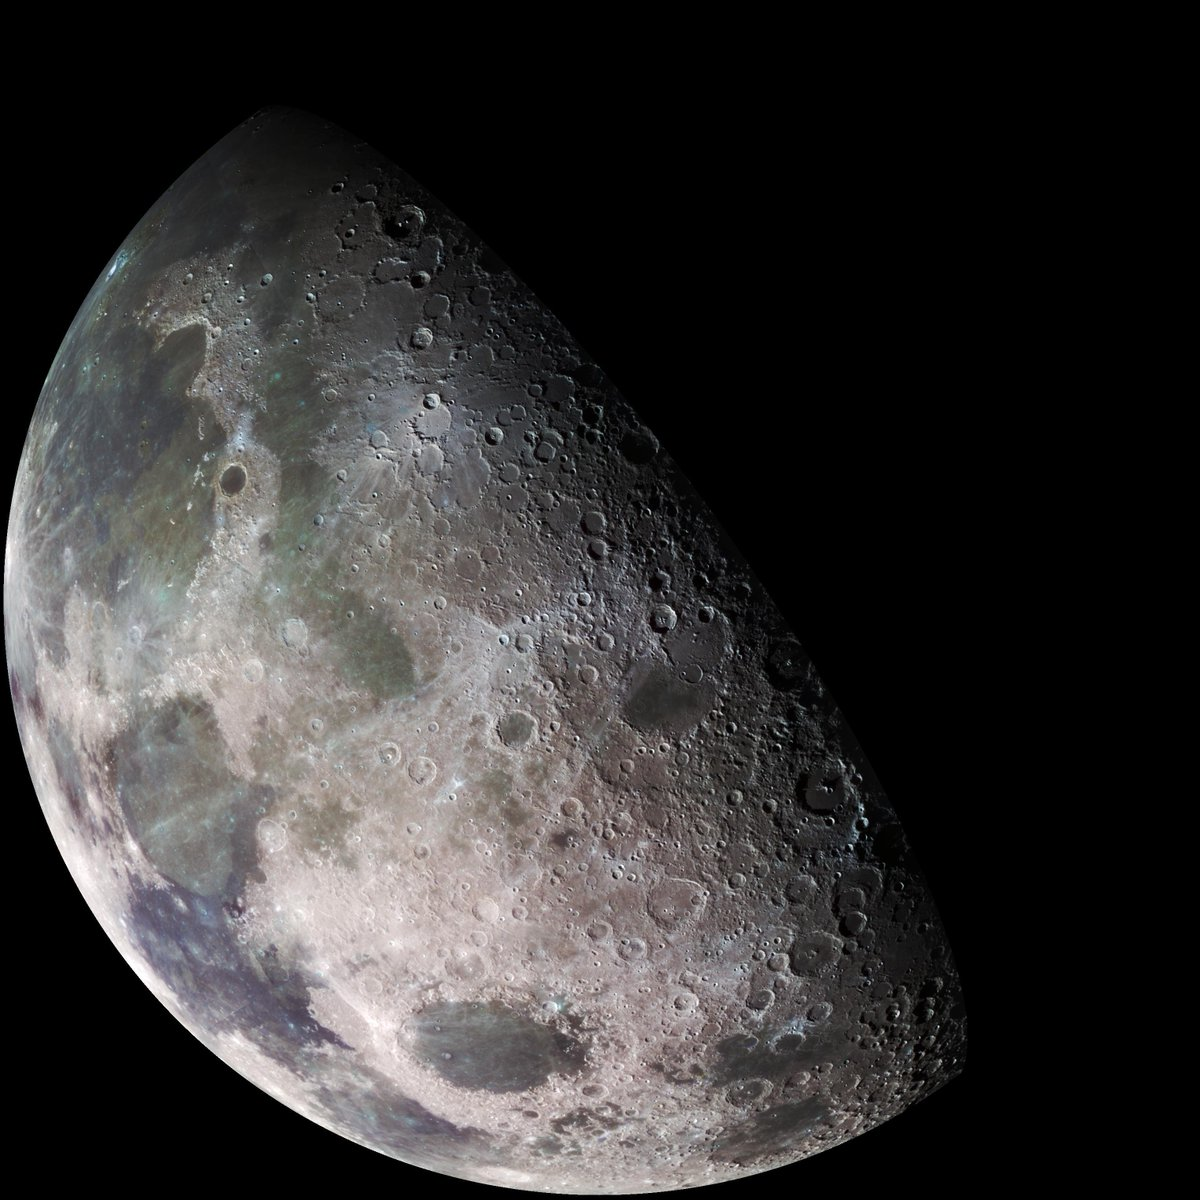 Were working to send astronauts to the Moons surface in the next five years. But where to go? NASA is setting its (landing) sights on the lunar South Pole, somewhere humans have never ventured: go.nasa.gov/2IniWaL